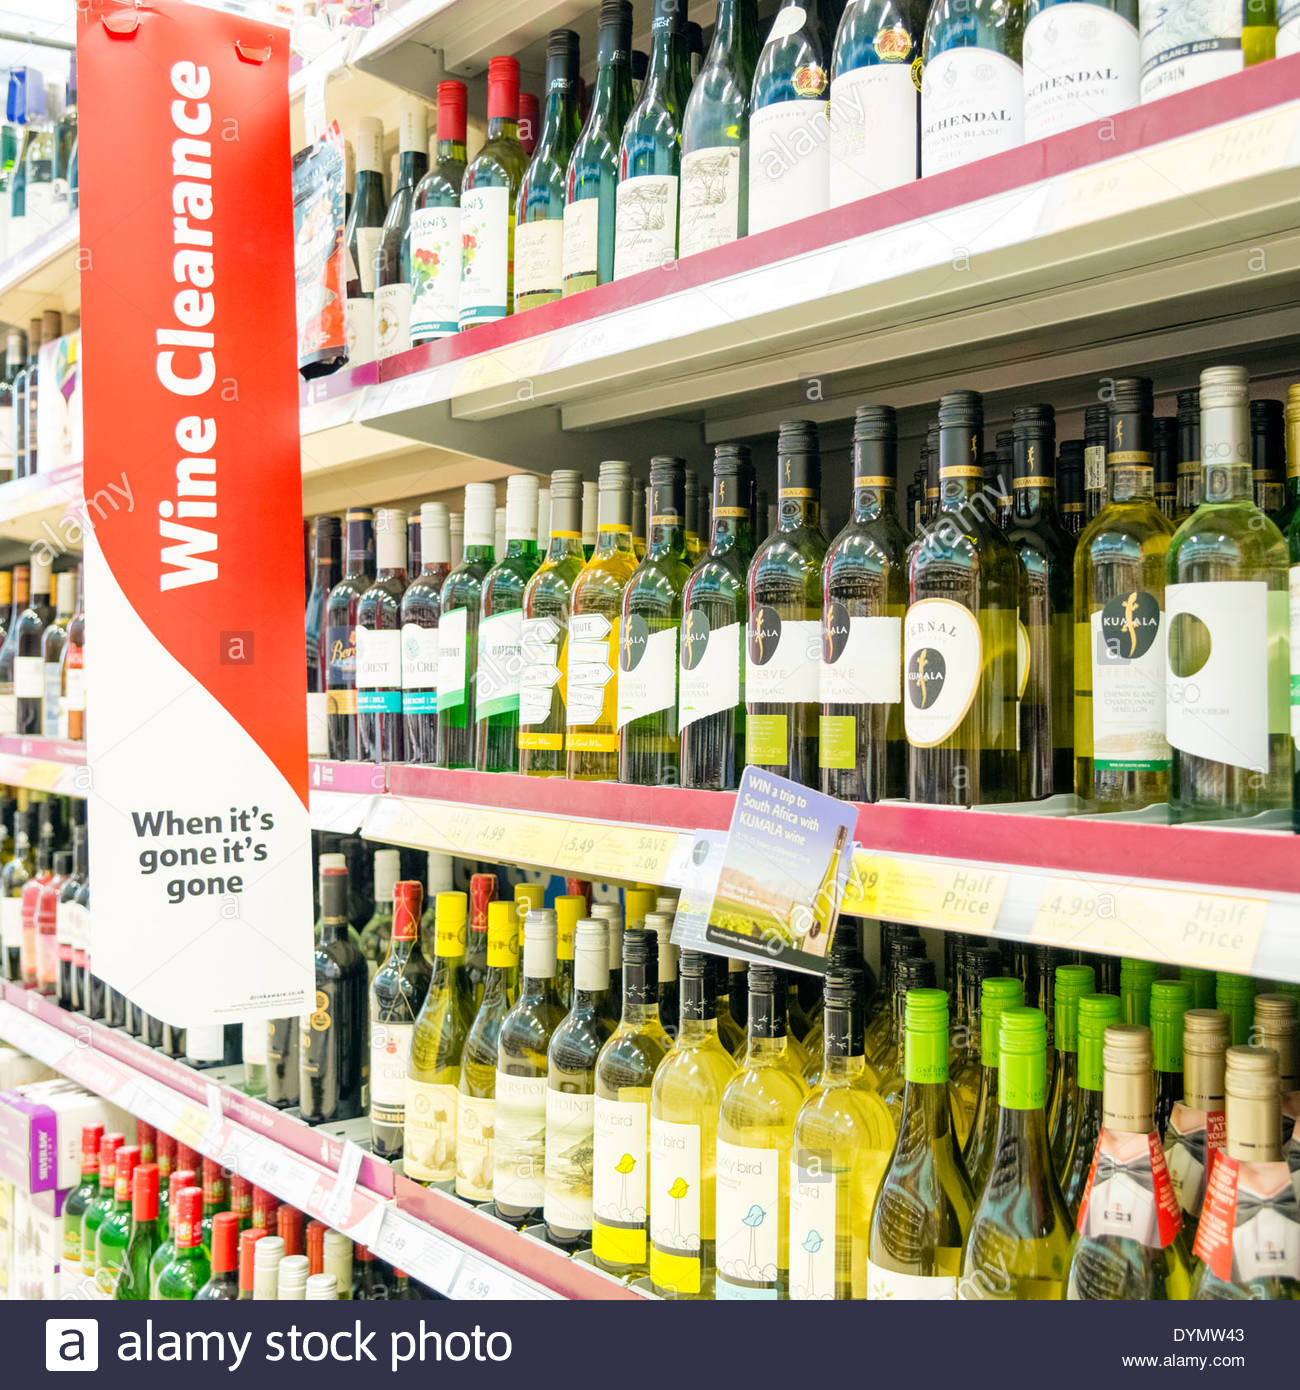 Wine clearance sale at a Tesco store, UK. - Stock Image